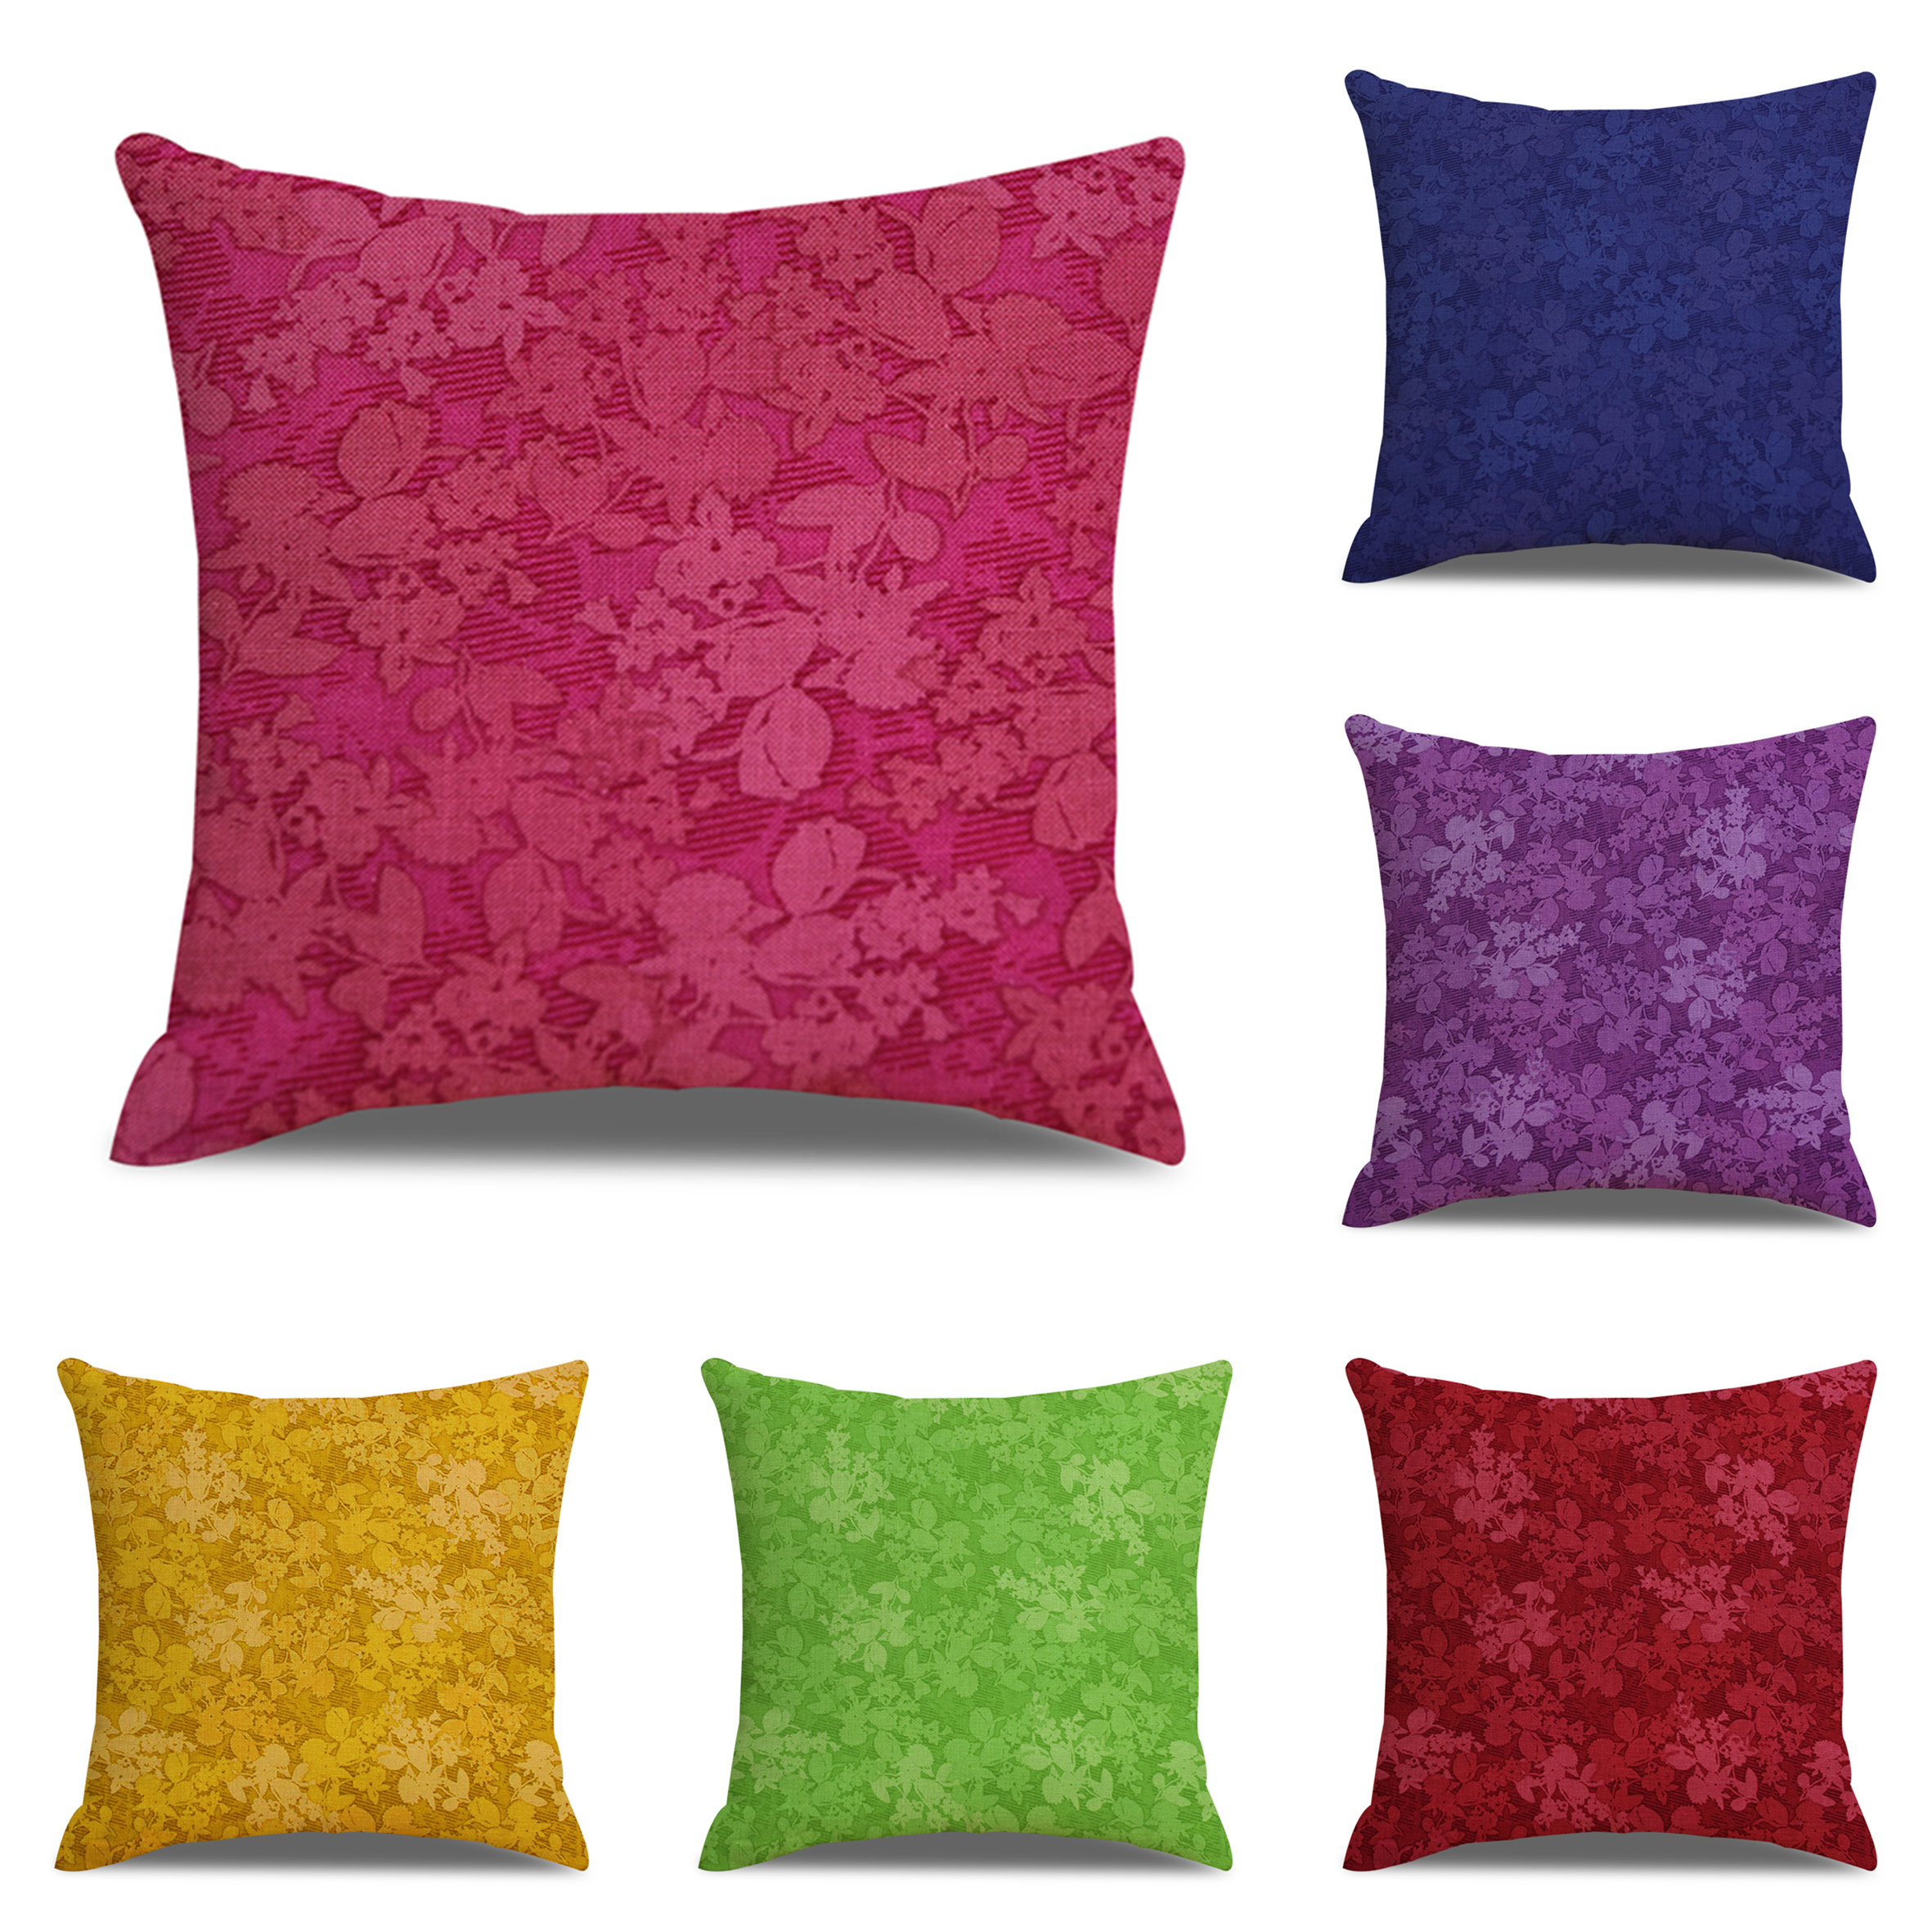 Classical Solid Color Floral Printed Linen Cushion Cover Home Sofa Art Decor Back Throw Pillow Cover